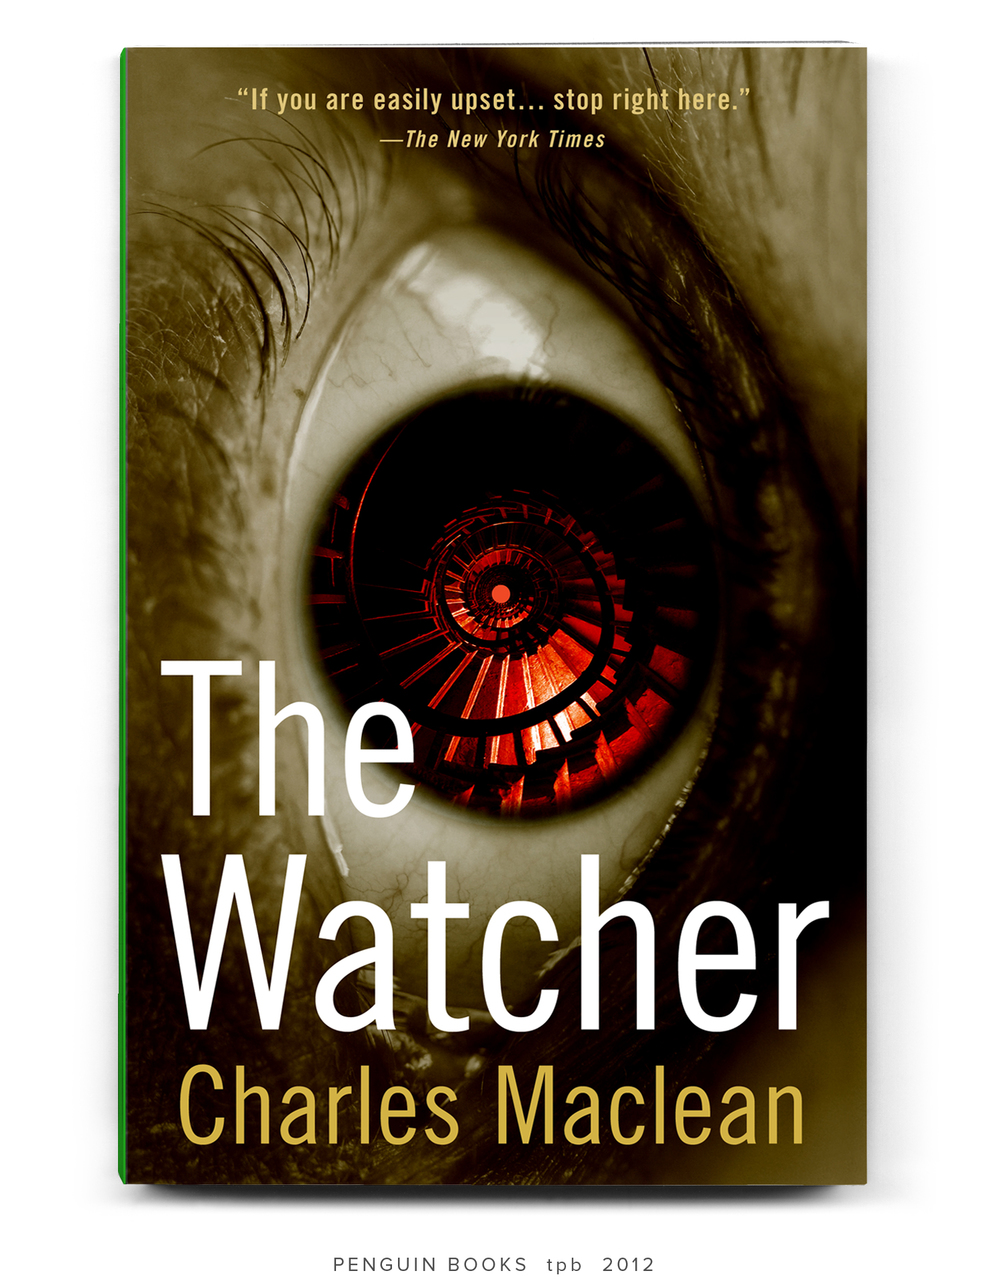 THE-WATCHER-tpb-ss6.jpg